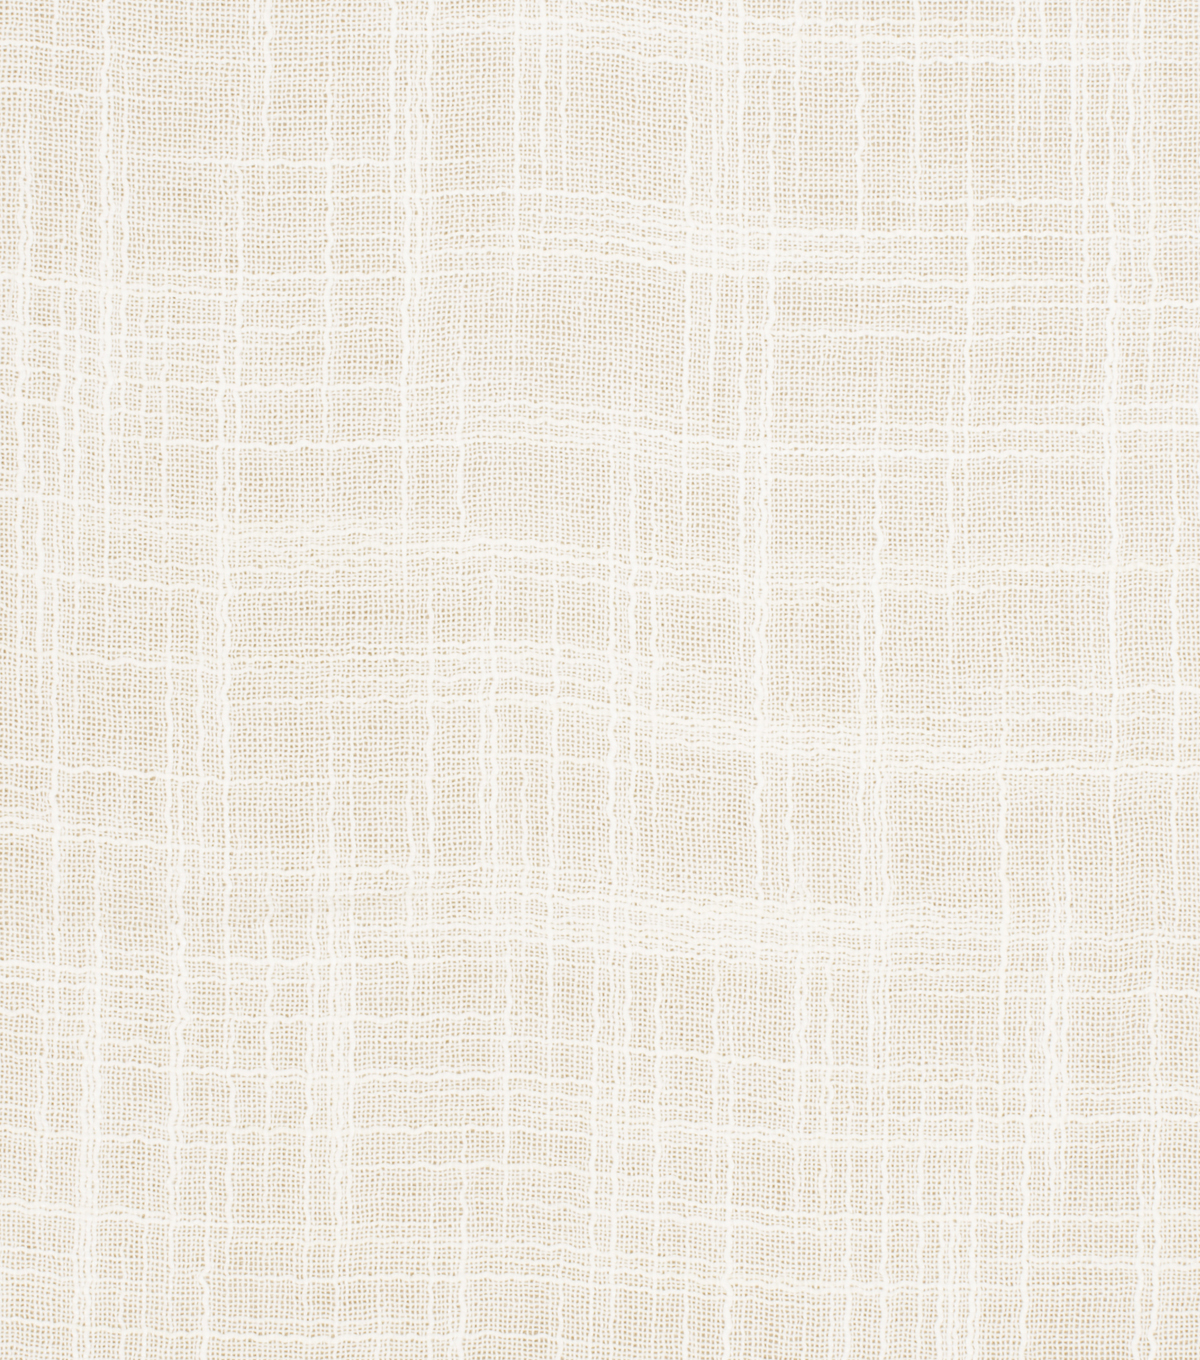 Home Decor 8x8 Fabric Swatch-Eaton Square Radiant Winter White